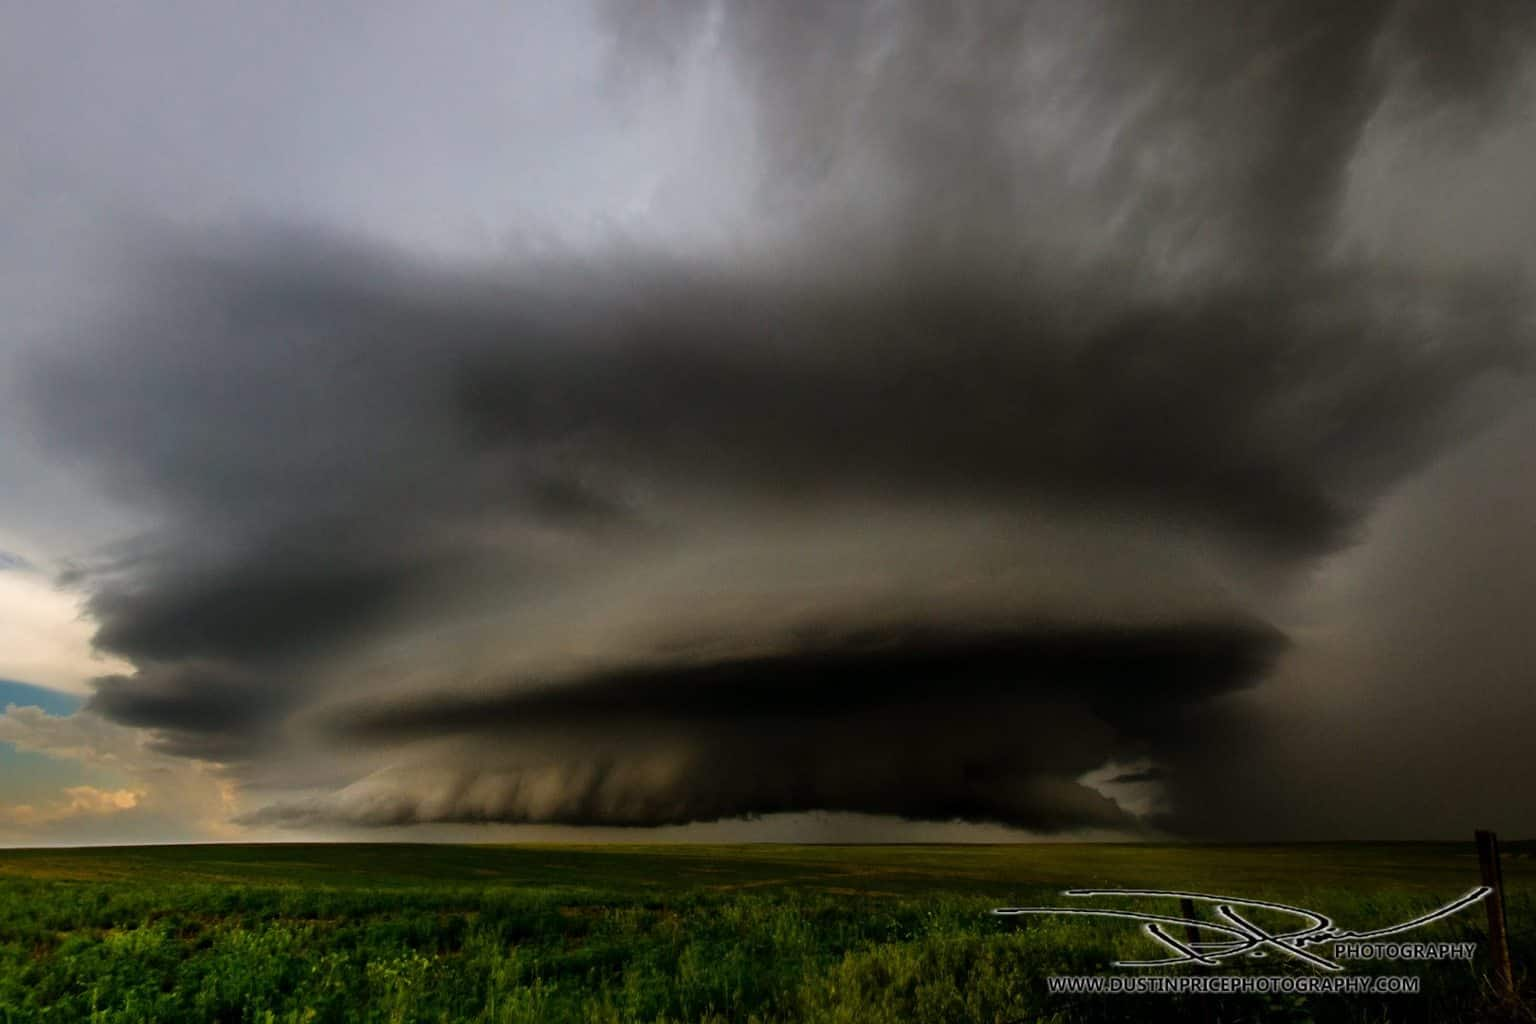 This tornado warned cell had started to break down near Hoyt, Colorado in early June of last year when we stopped to take in all the glory mother nature had to offer that day ....